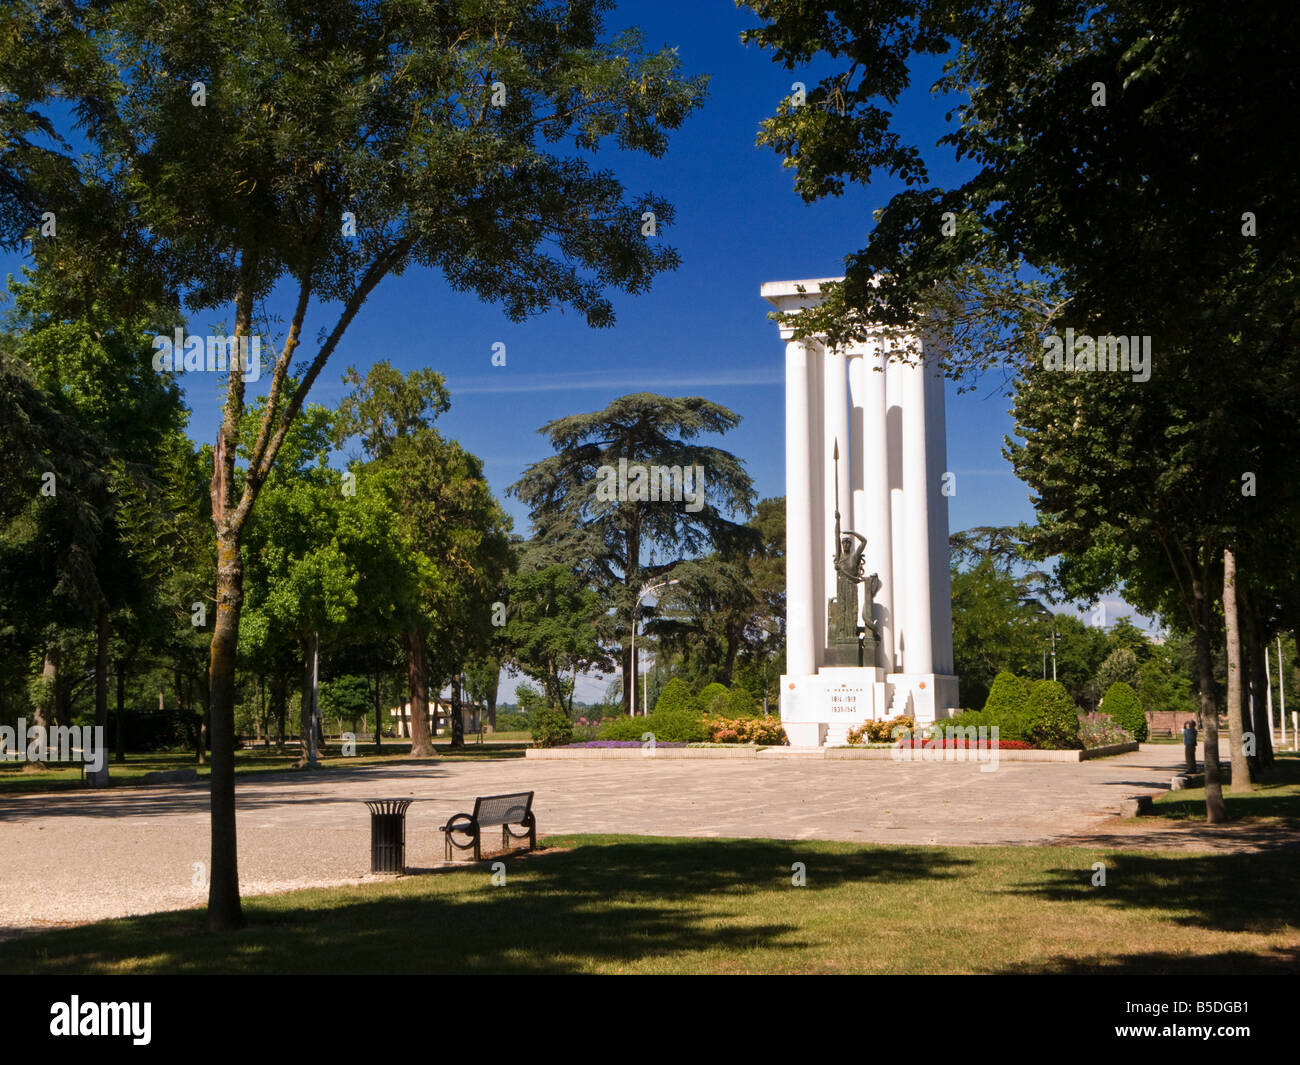 Monument to the dead of two World Wars in the town park in Montauban,Tarn et Garonne, France, Europe - Stock Image